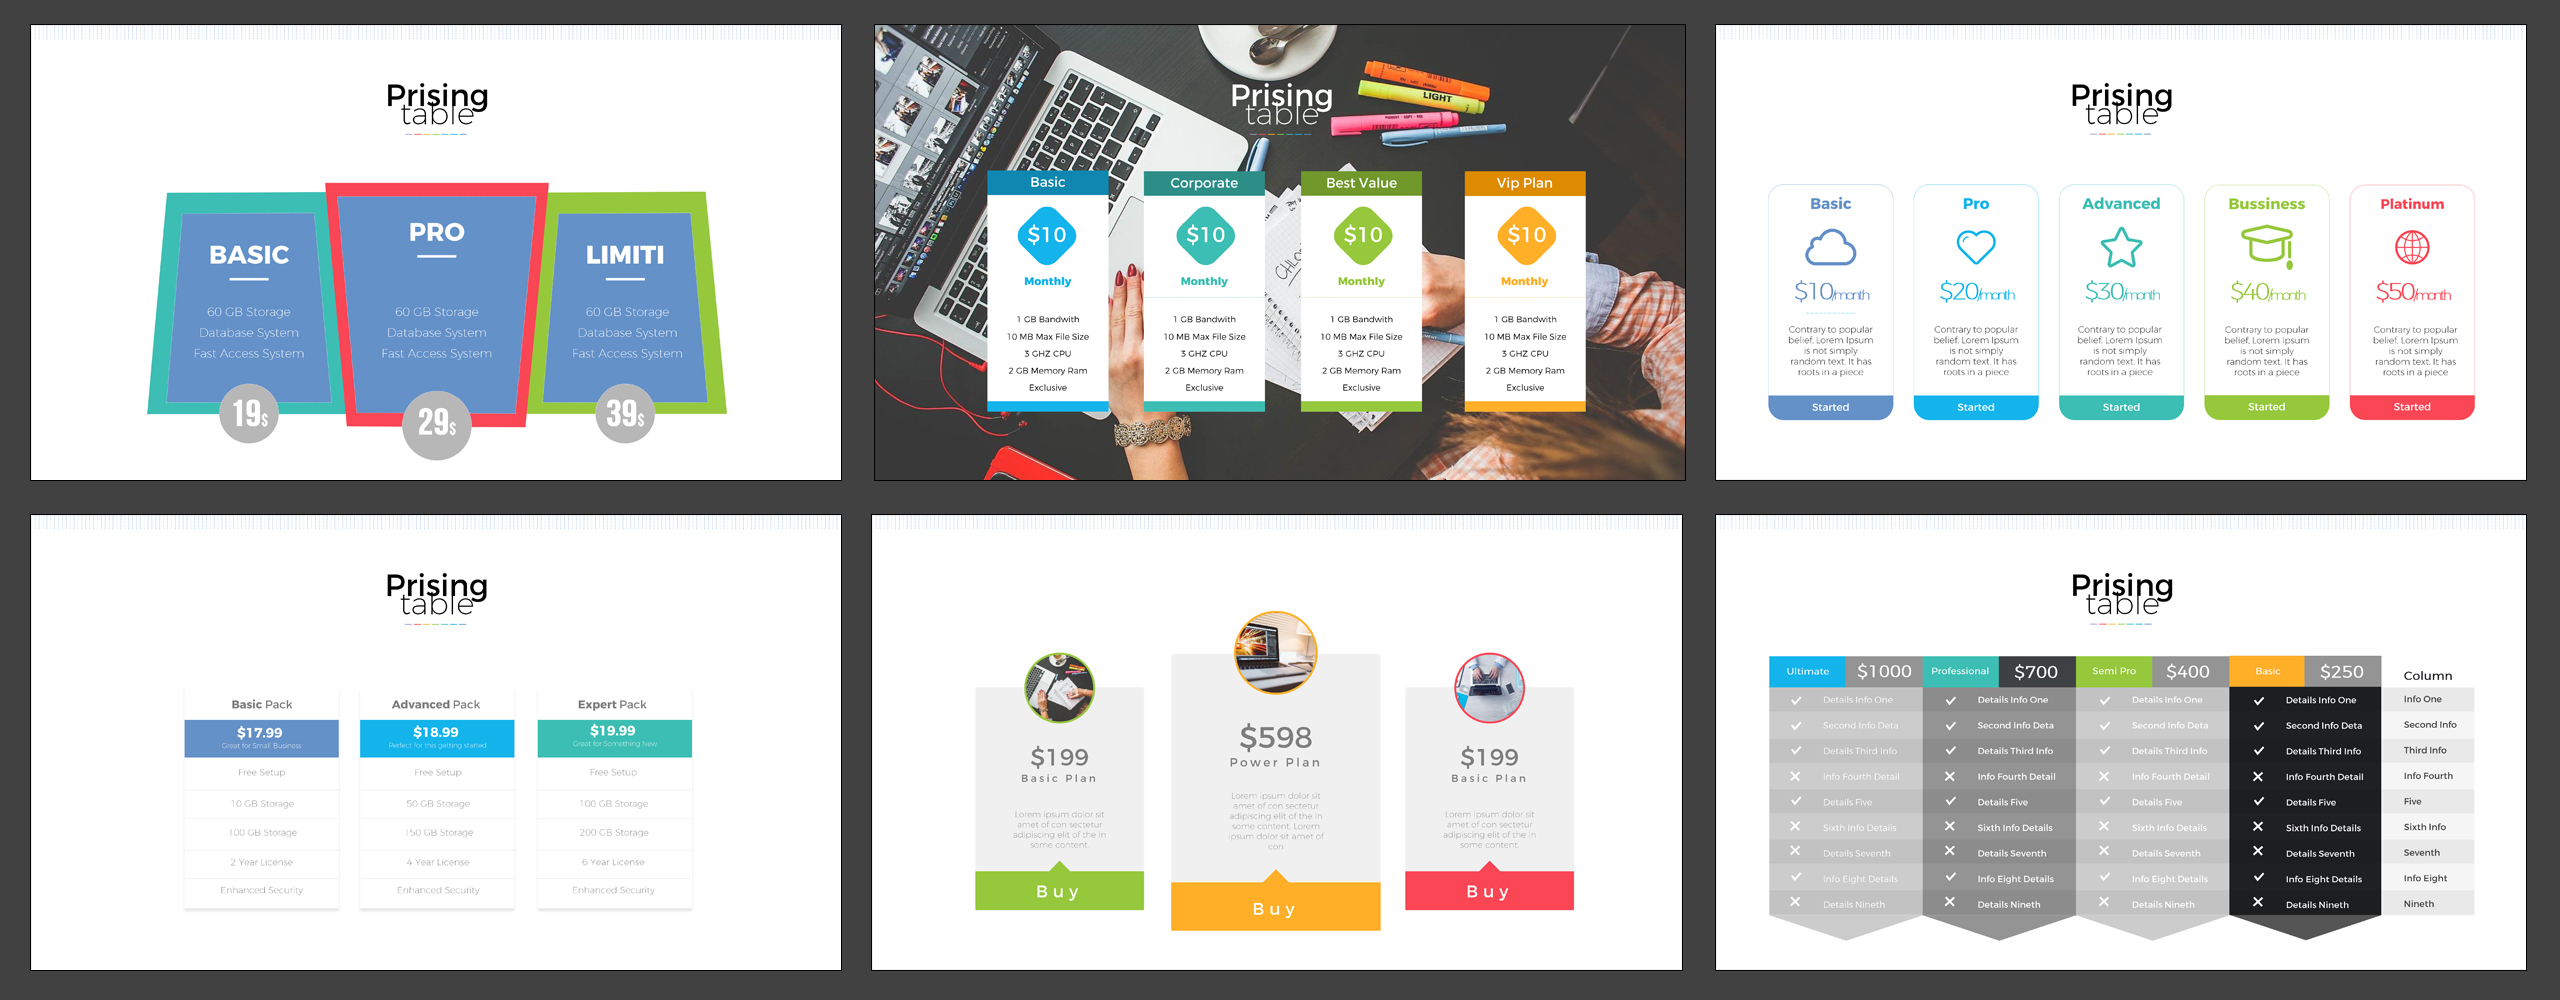 Pricing table presentation powerpoint template 65109 for Table design powerpoint